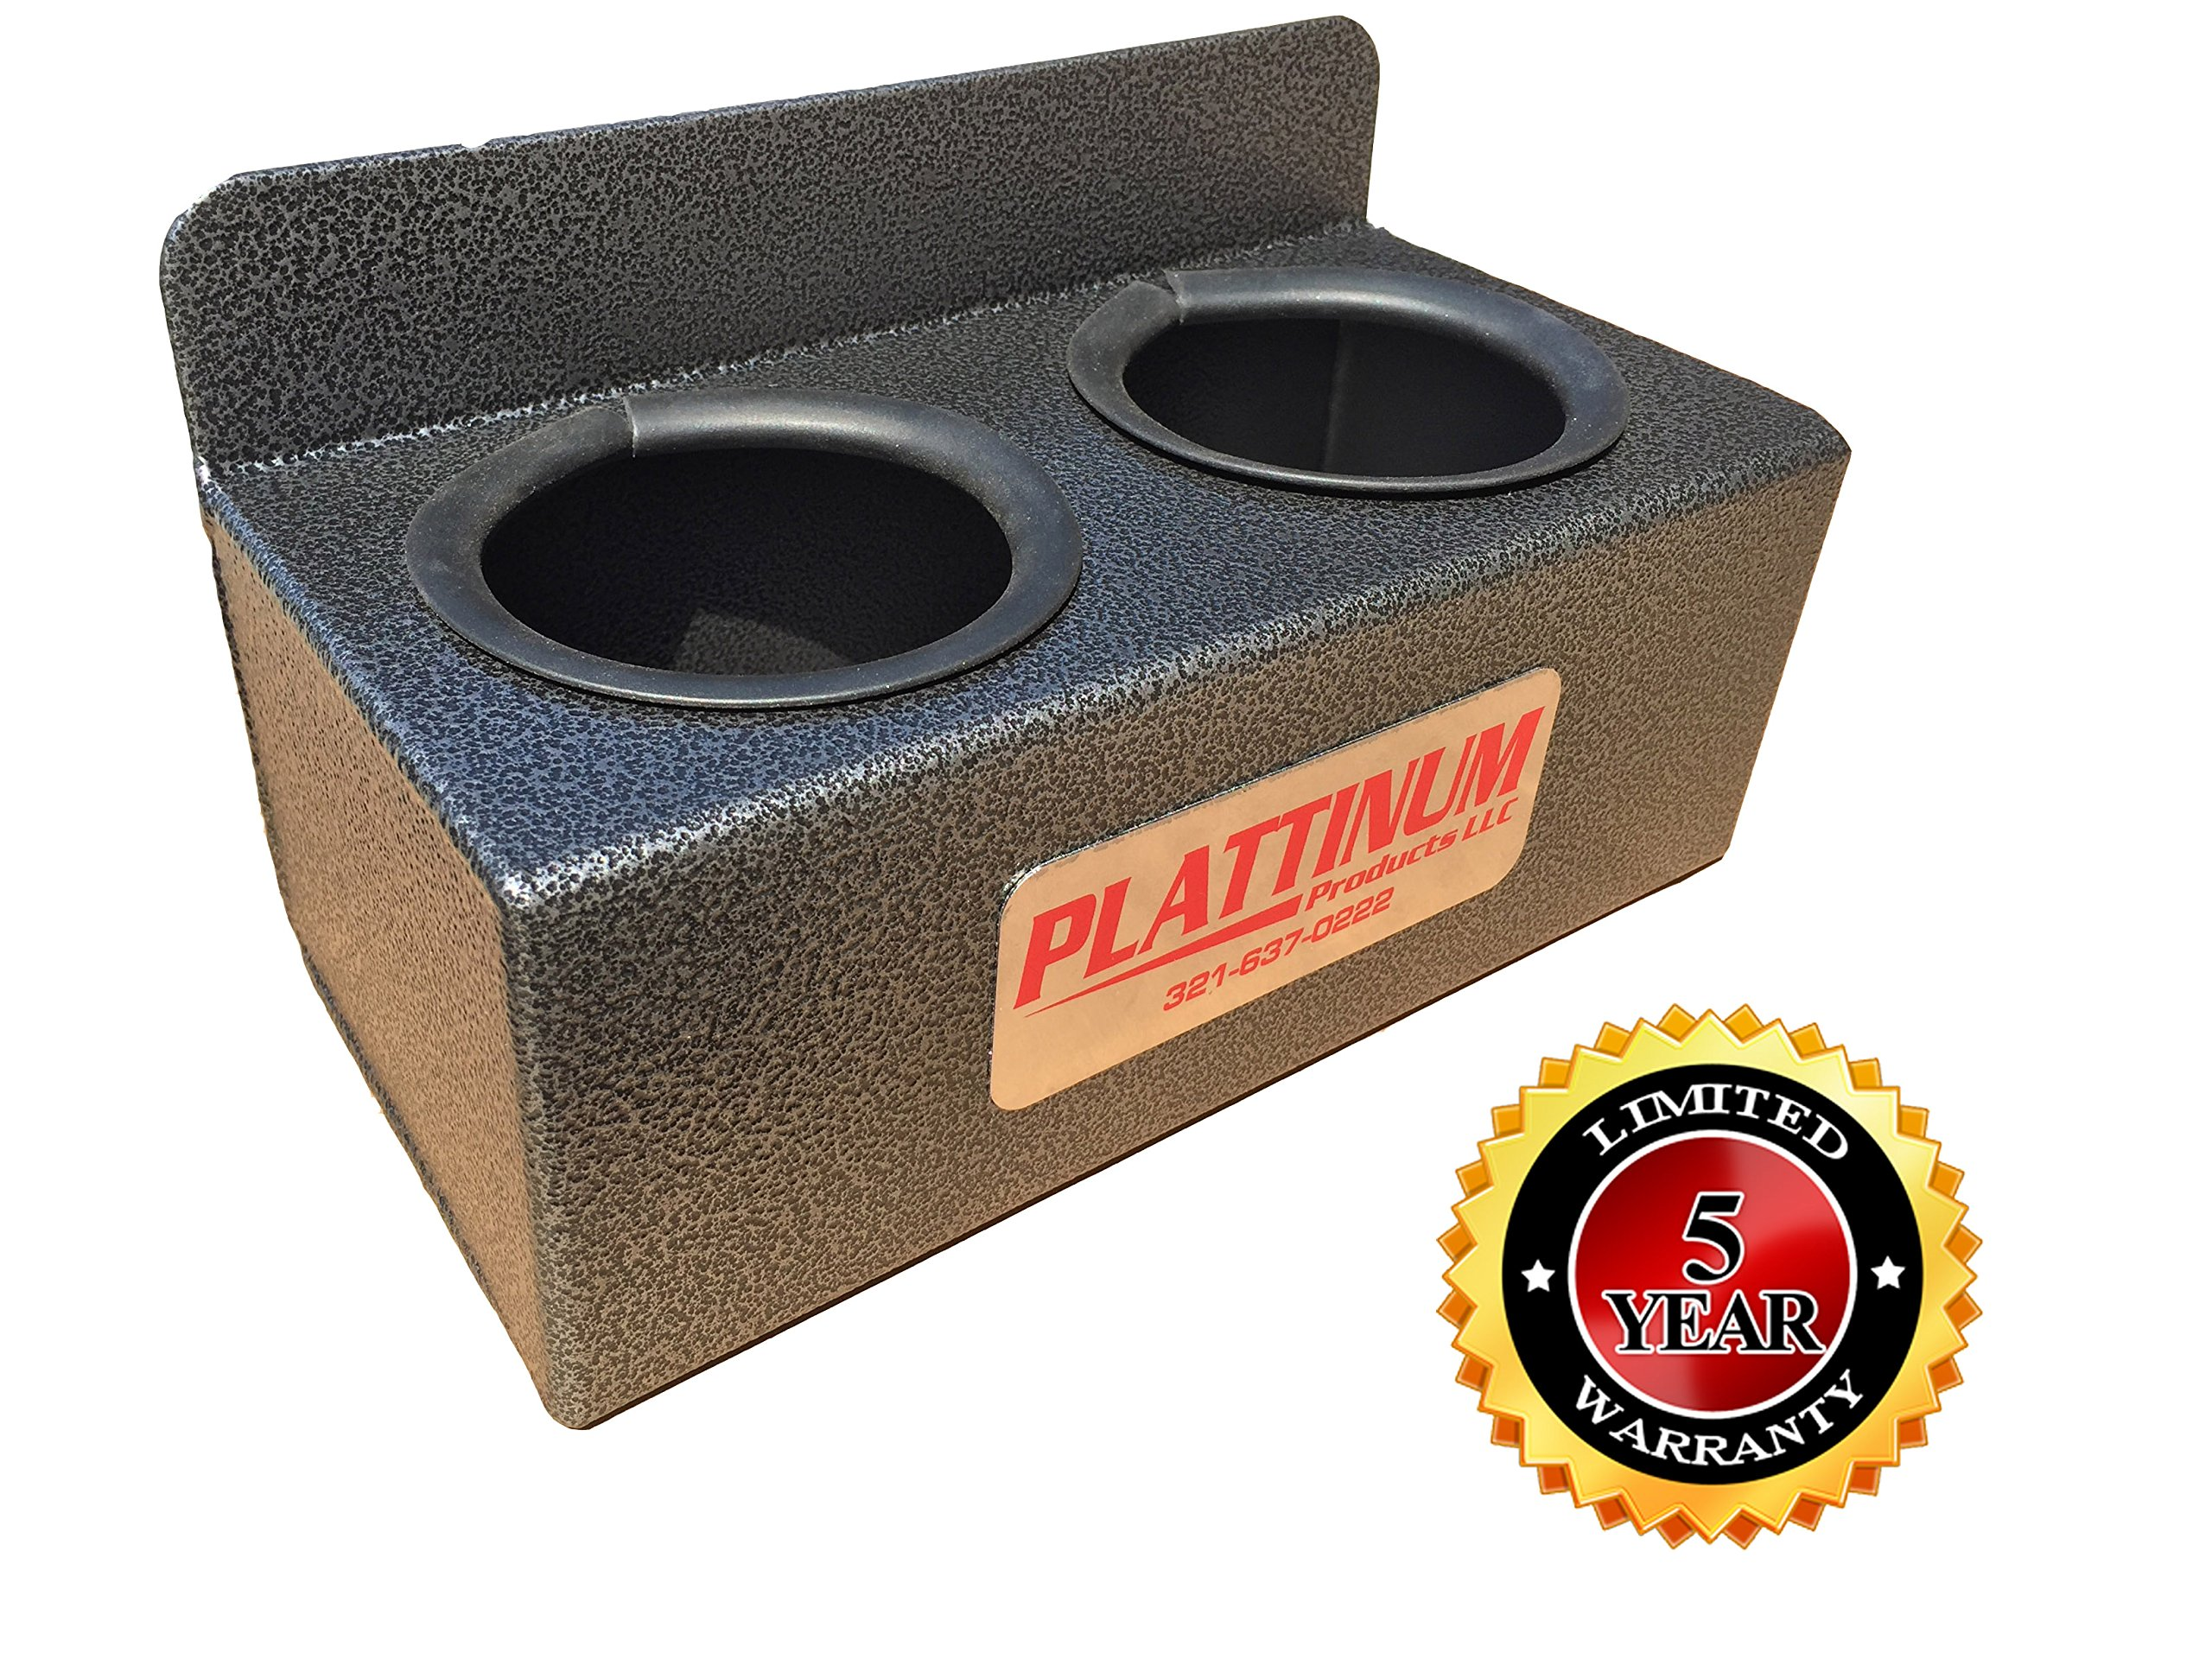 Aluminum 2 Slot Drink Holder MADE IN THE USA! by Plattinum Products